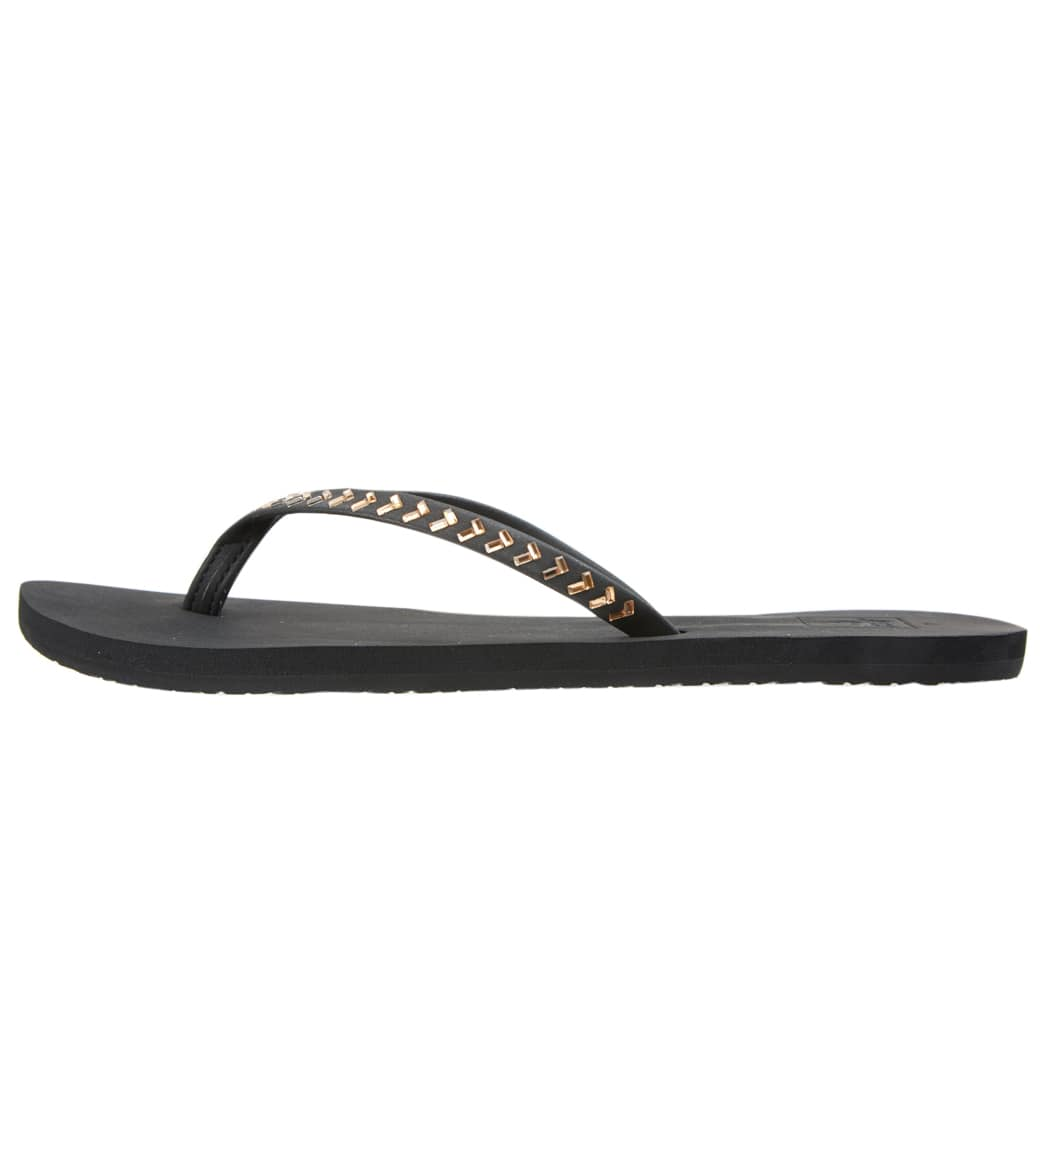 97d21f636dbf Reef Women s Bliss Embellished Flip Flop at SwimOutlet.com